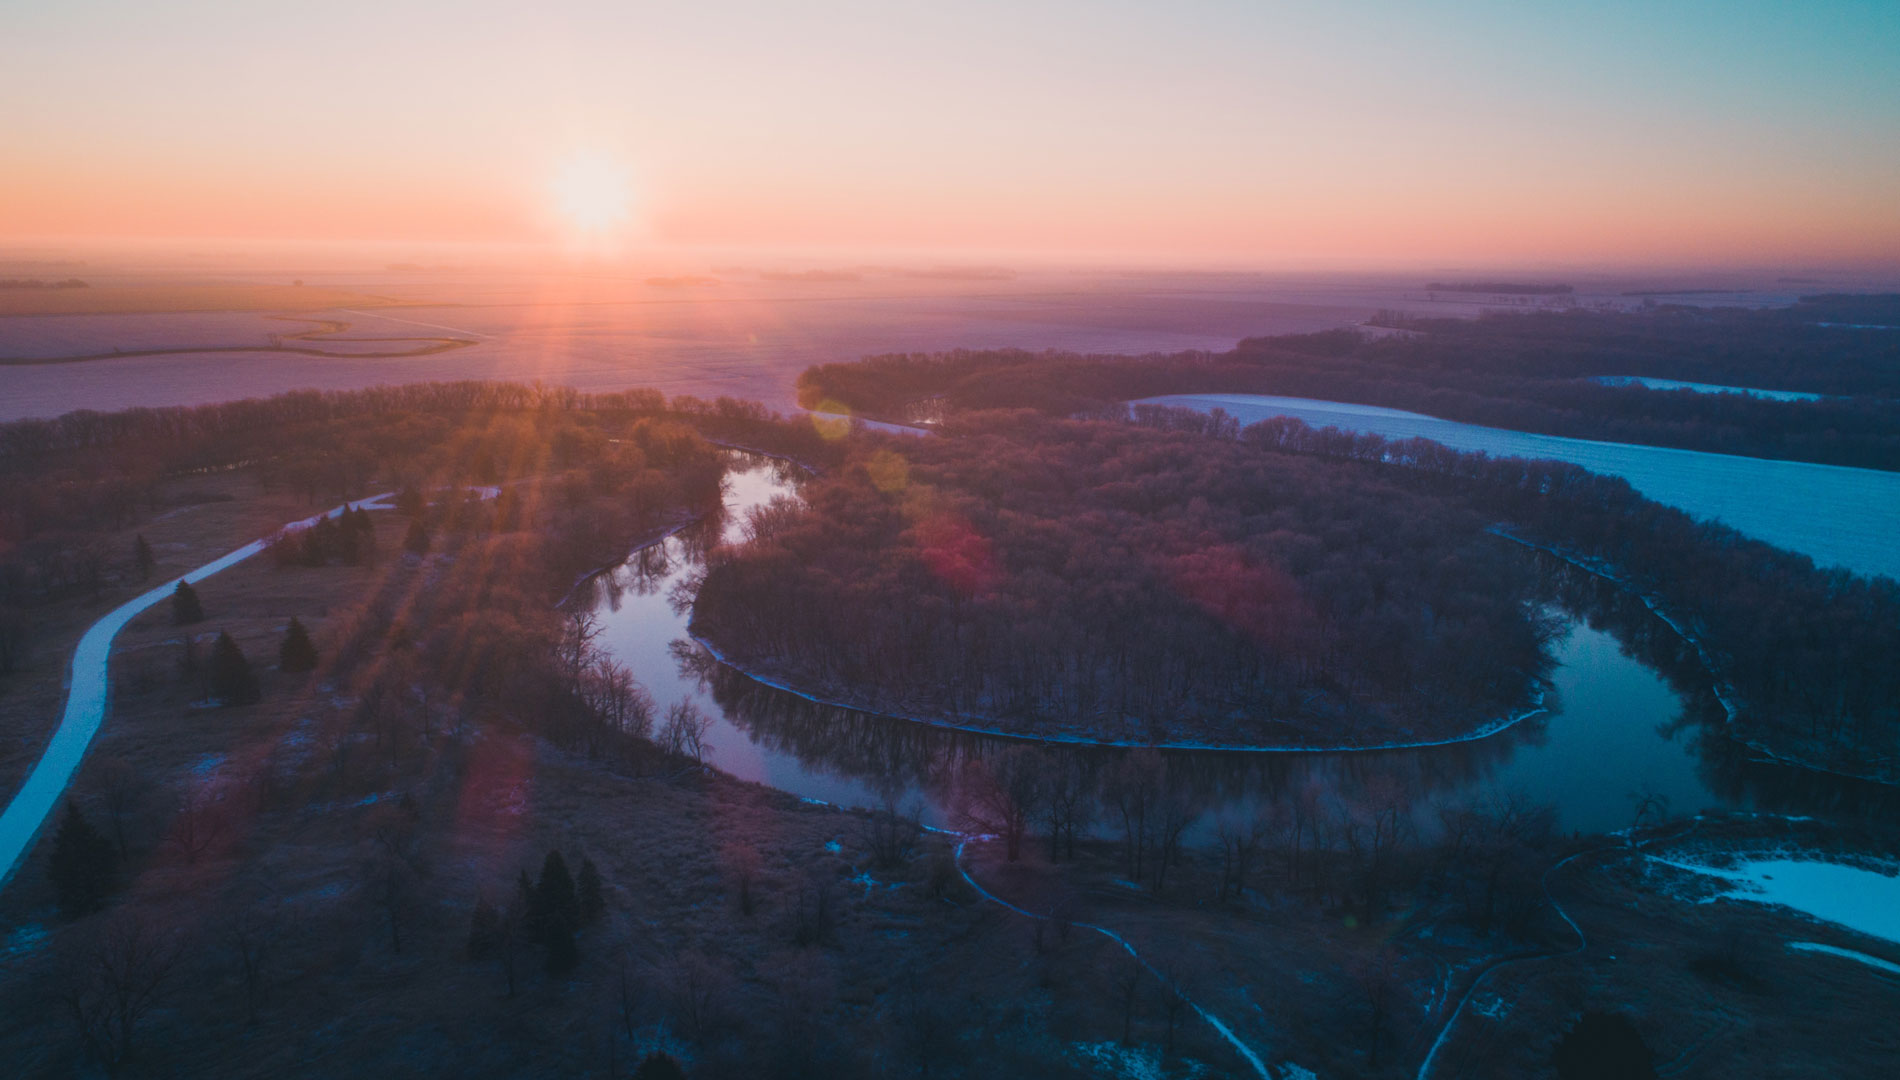 Sunrise over river in North Dakota